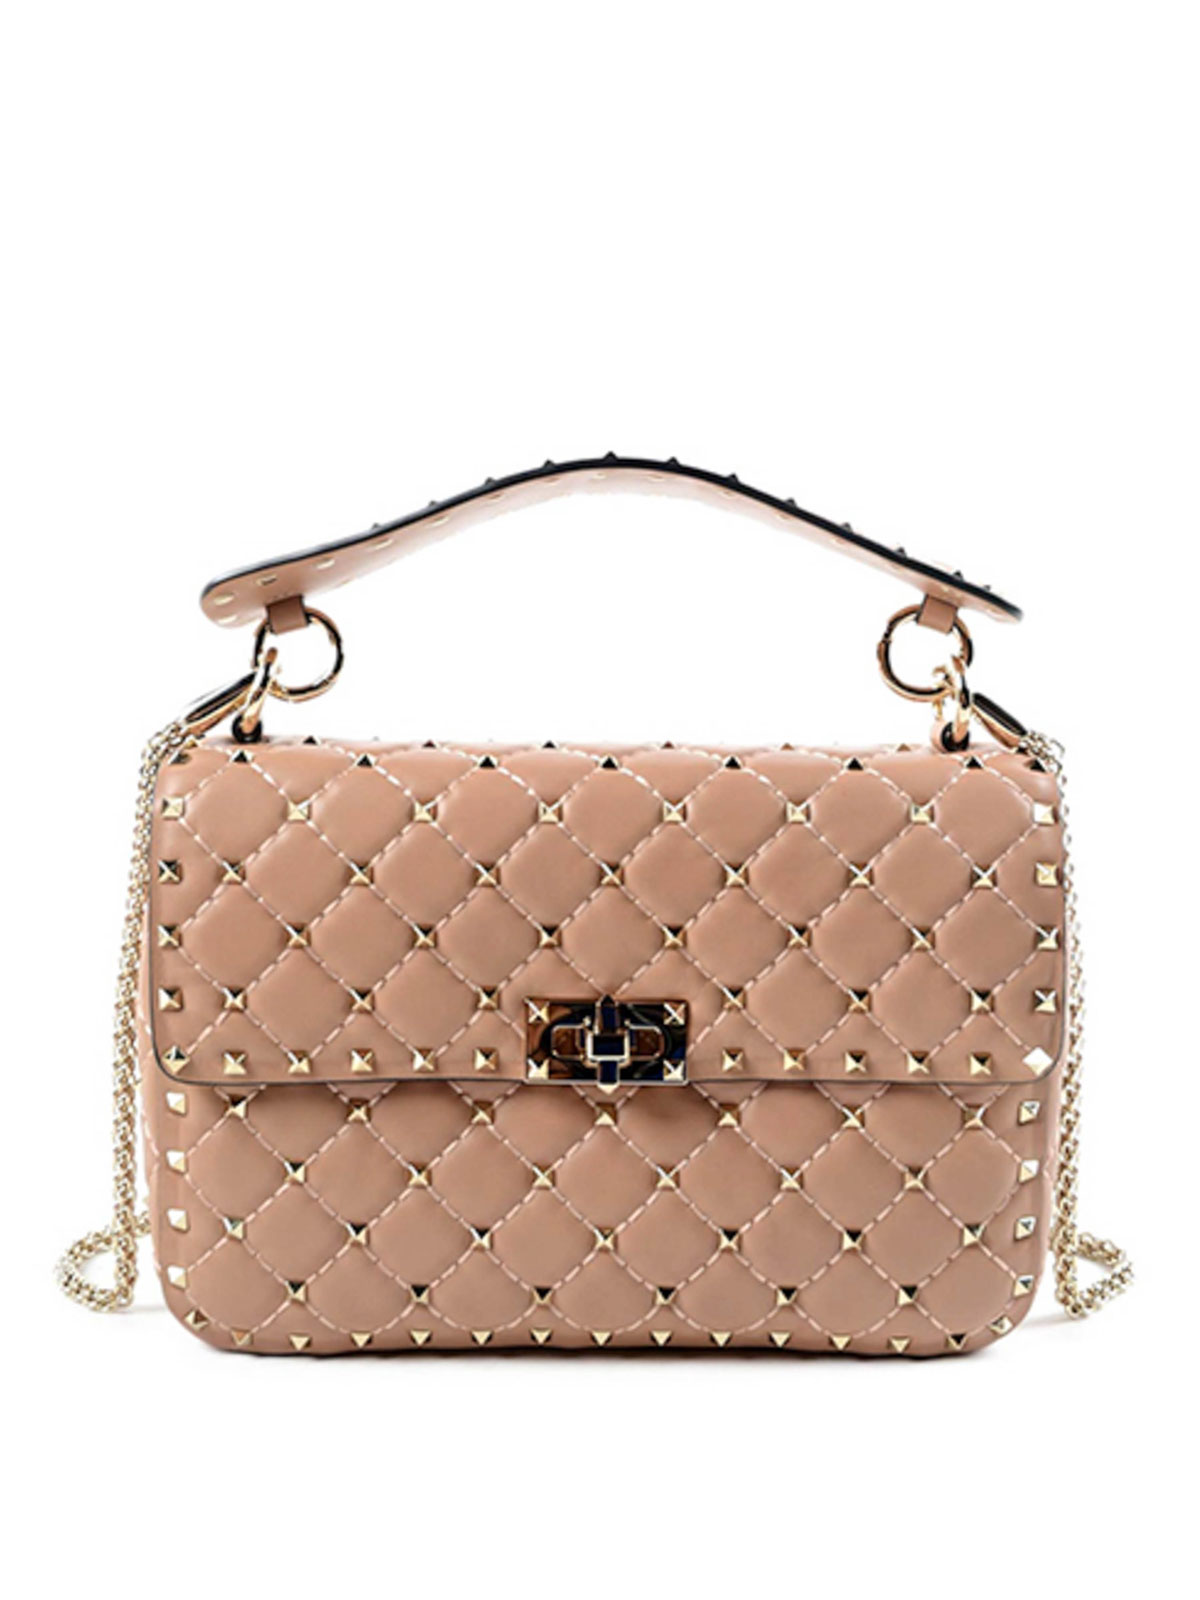 Valentino Garavani Cross Body Bags Studded Shoulder Bag